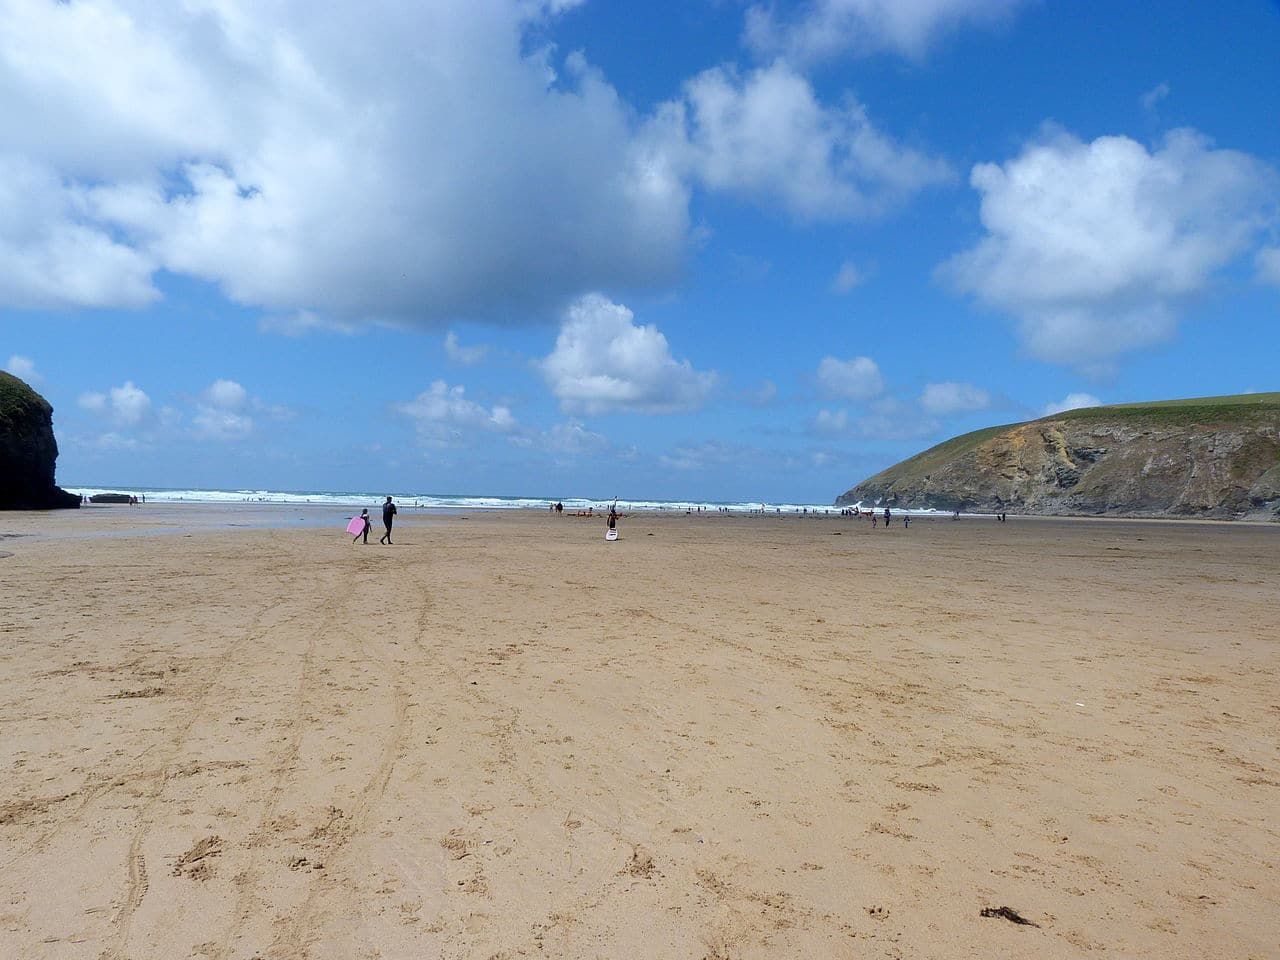 Mawgan Porth near Newquay in Cornwall